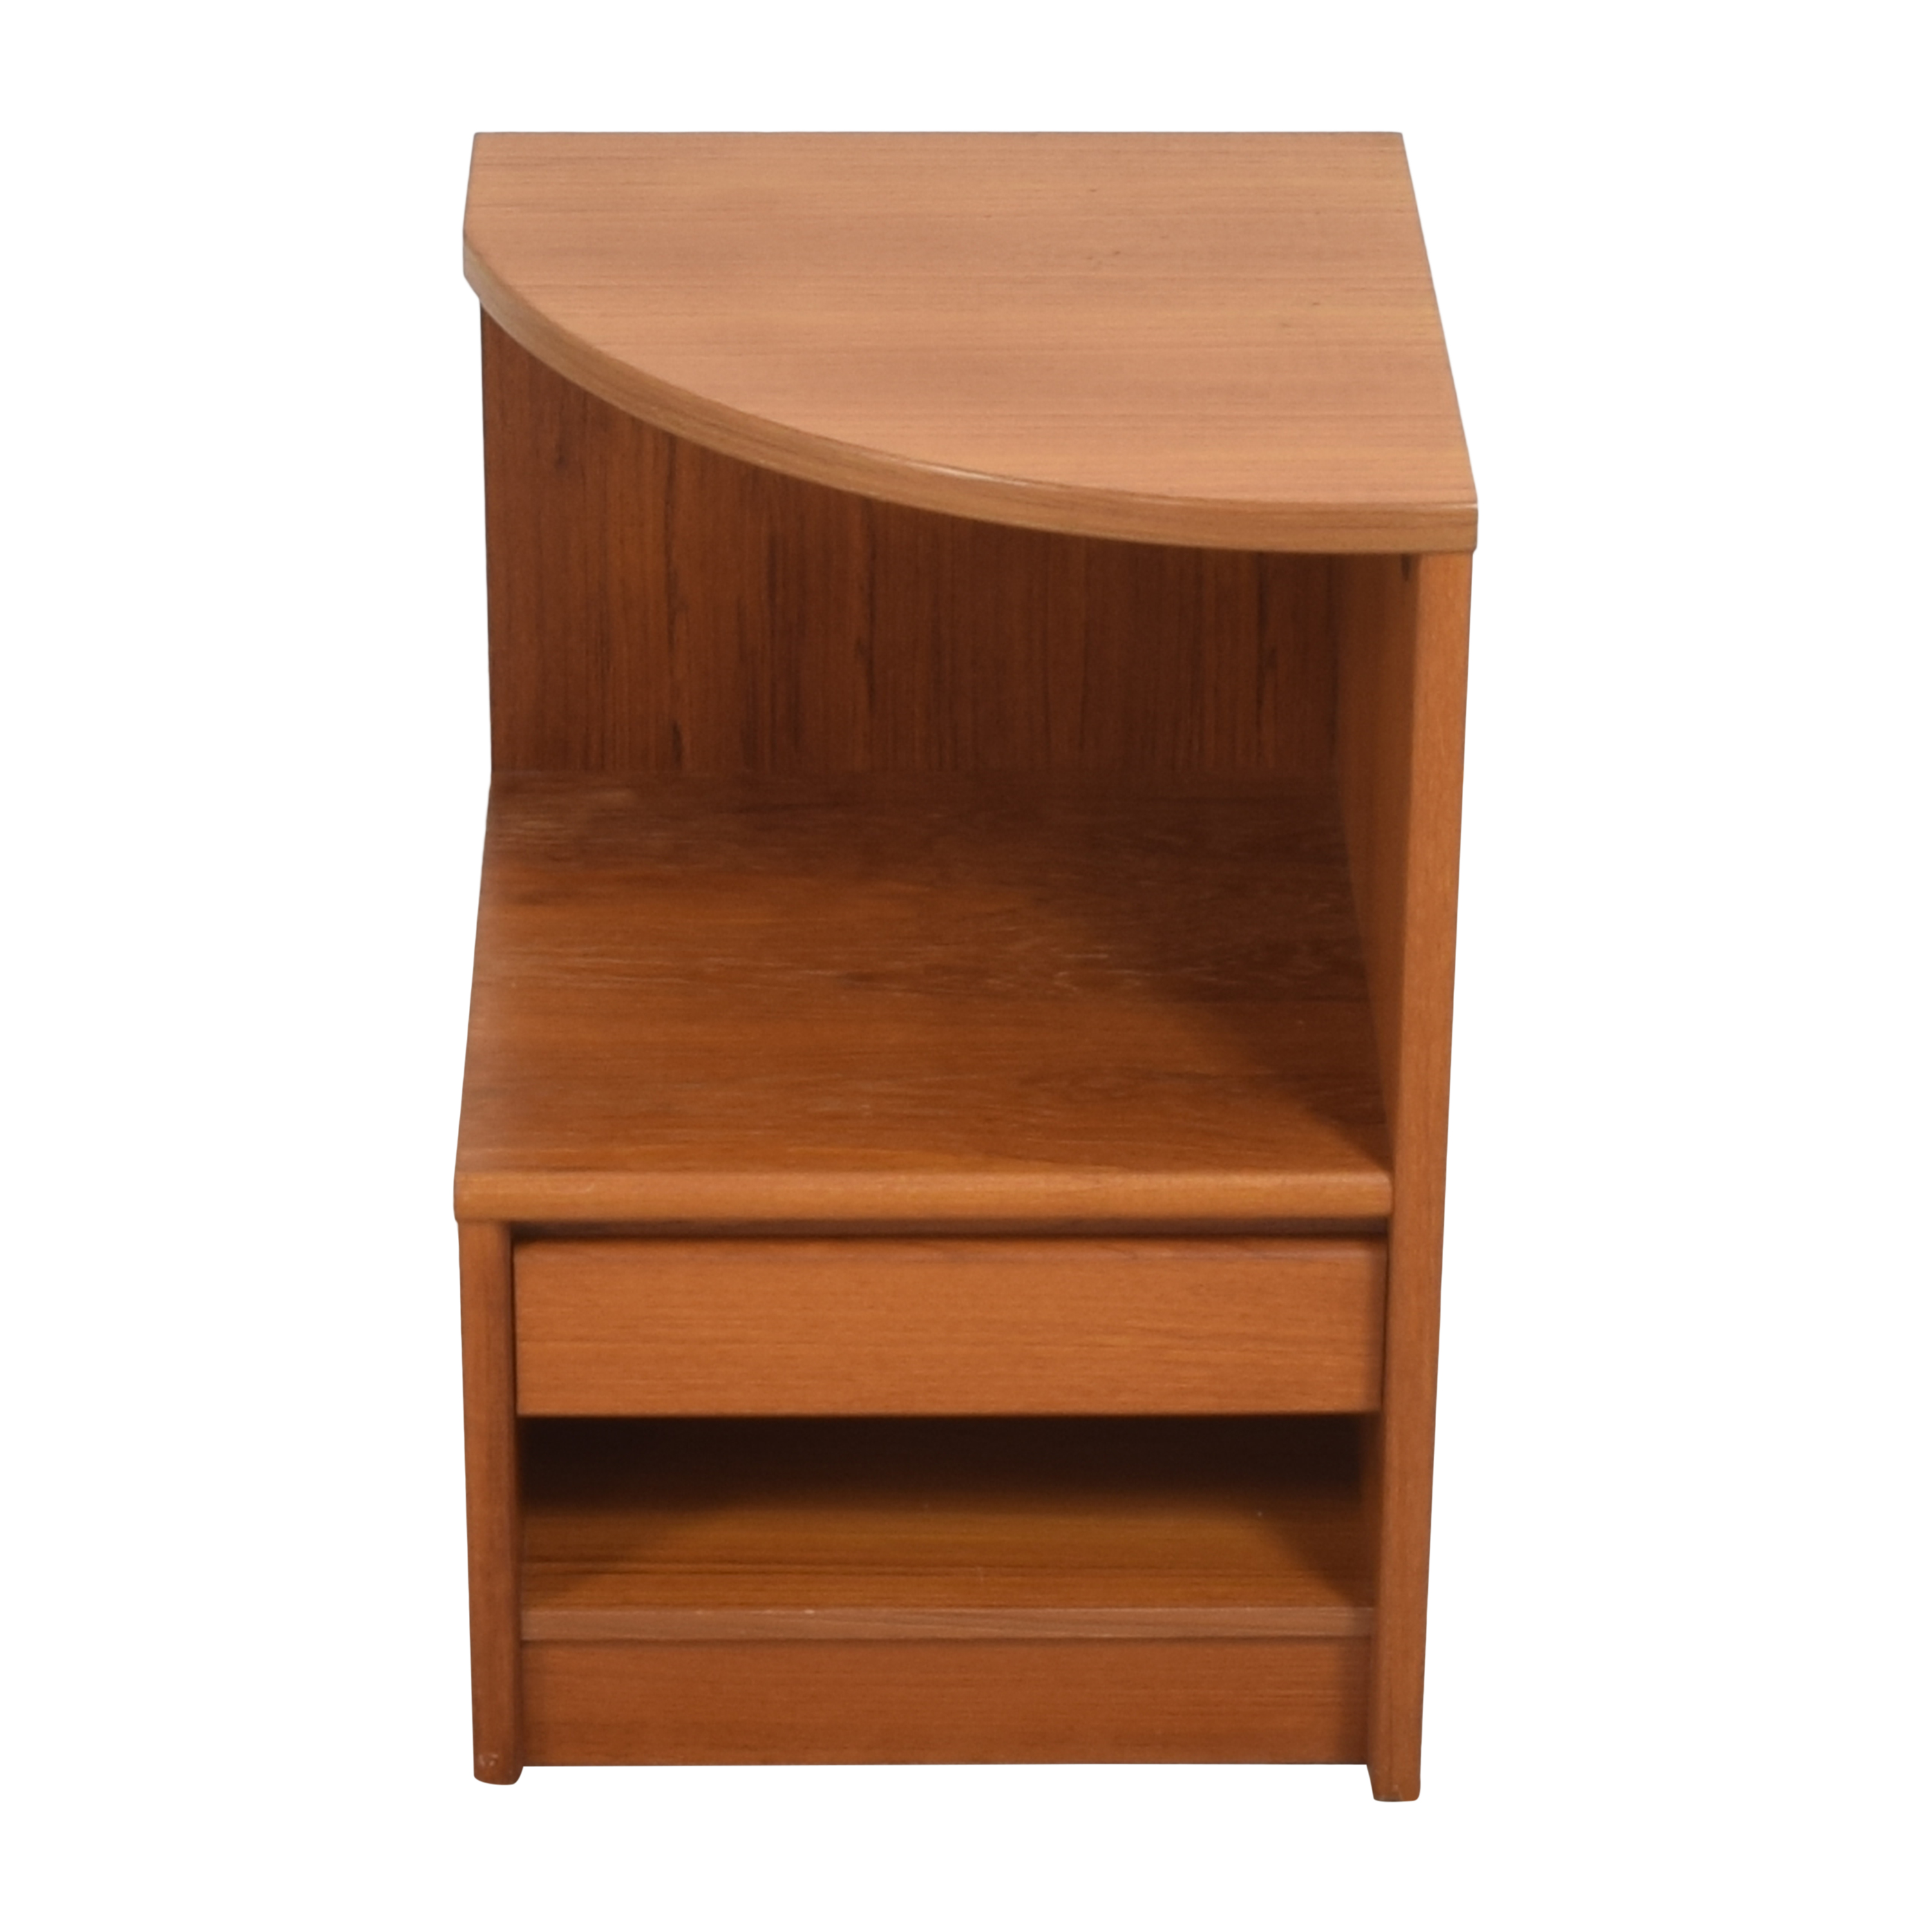 Danish Curved Nightstand Tables